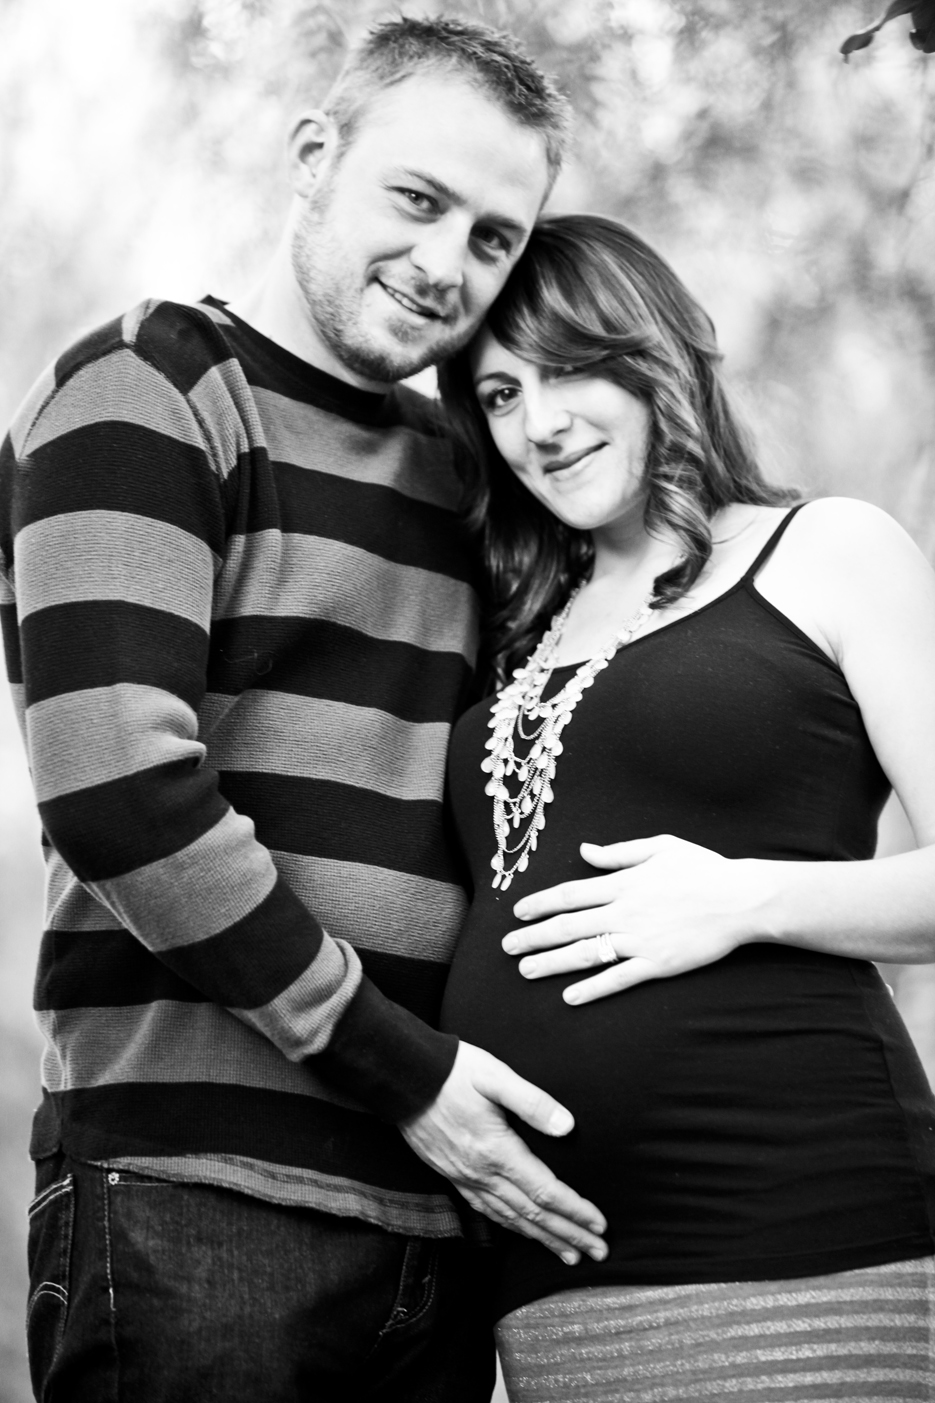 Our Pregnancy 15 Pregnancy Shoot in the Park, Orange County